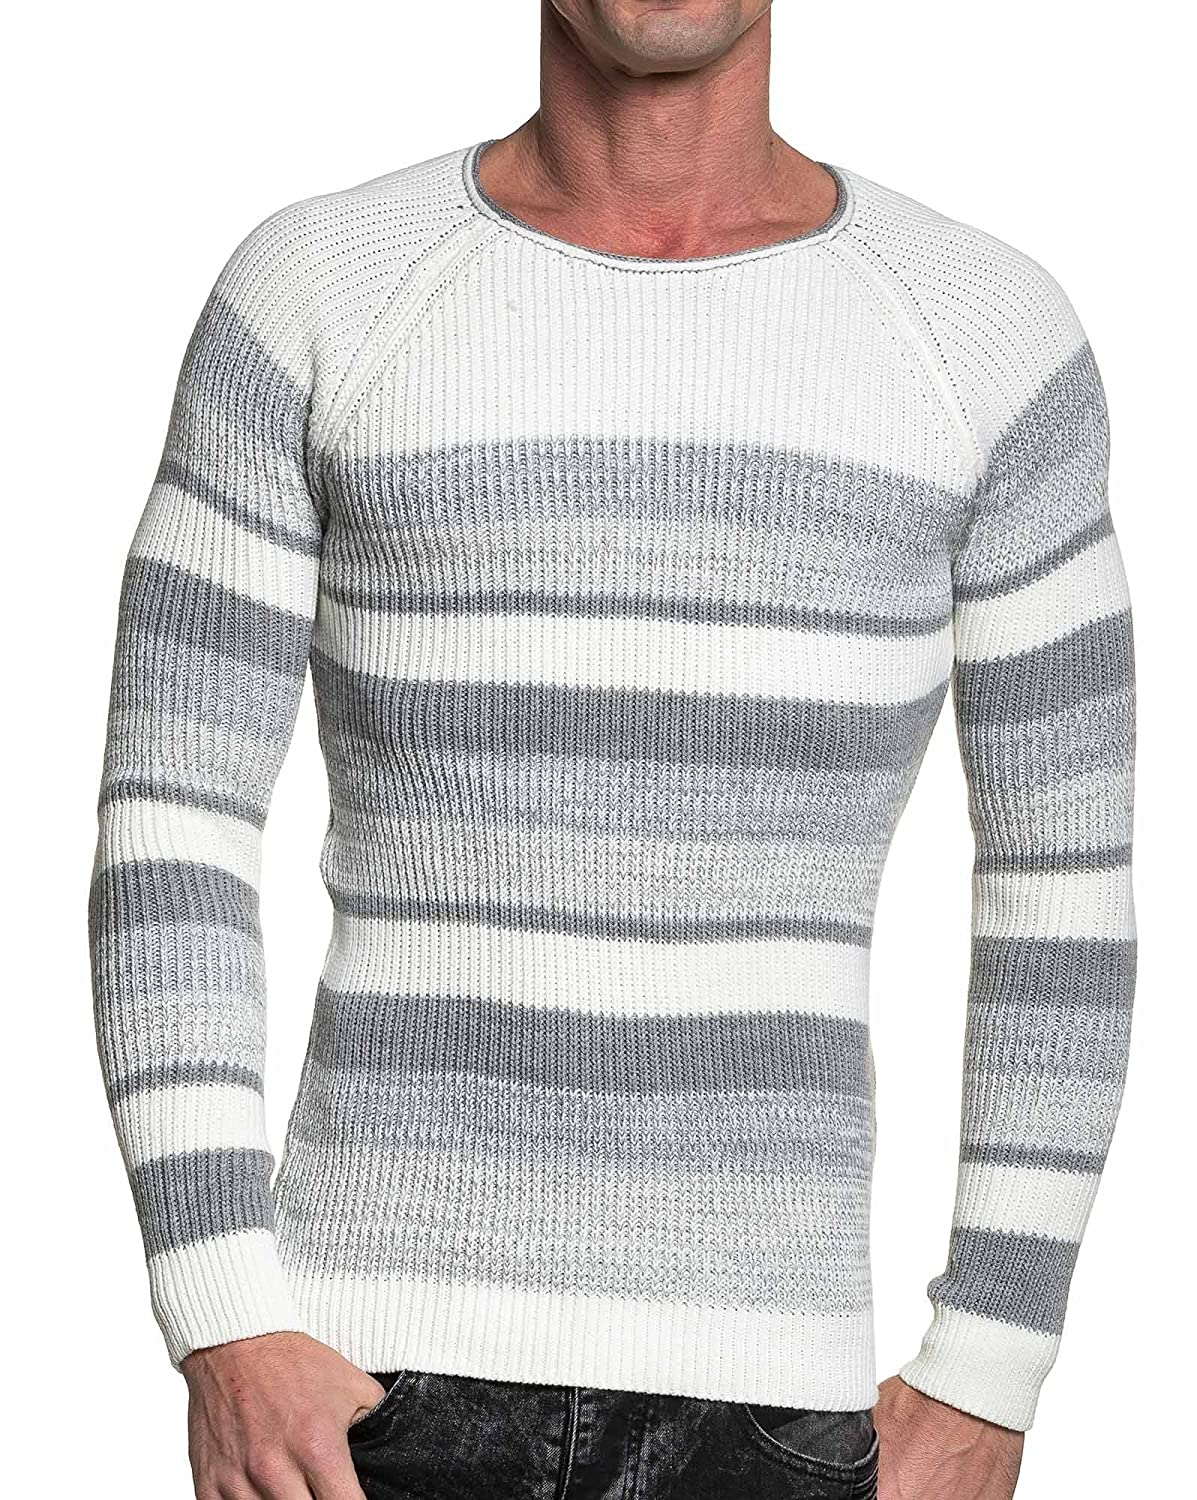 BLZ jeans - cream and gray sweater man in fine mesh